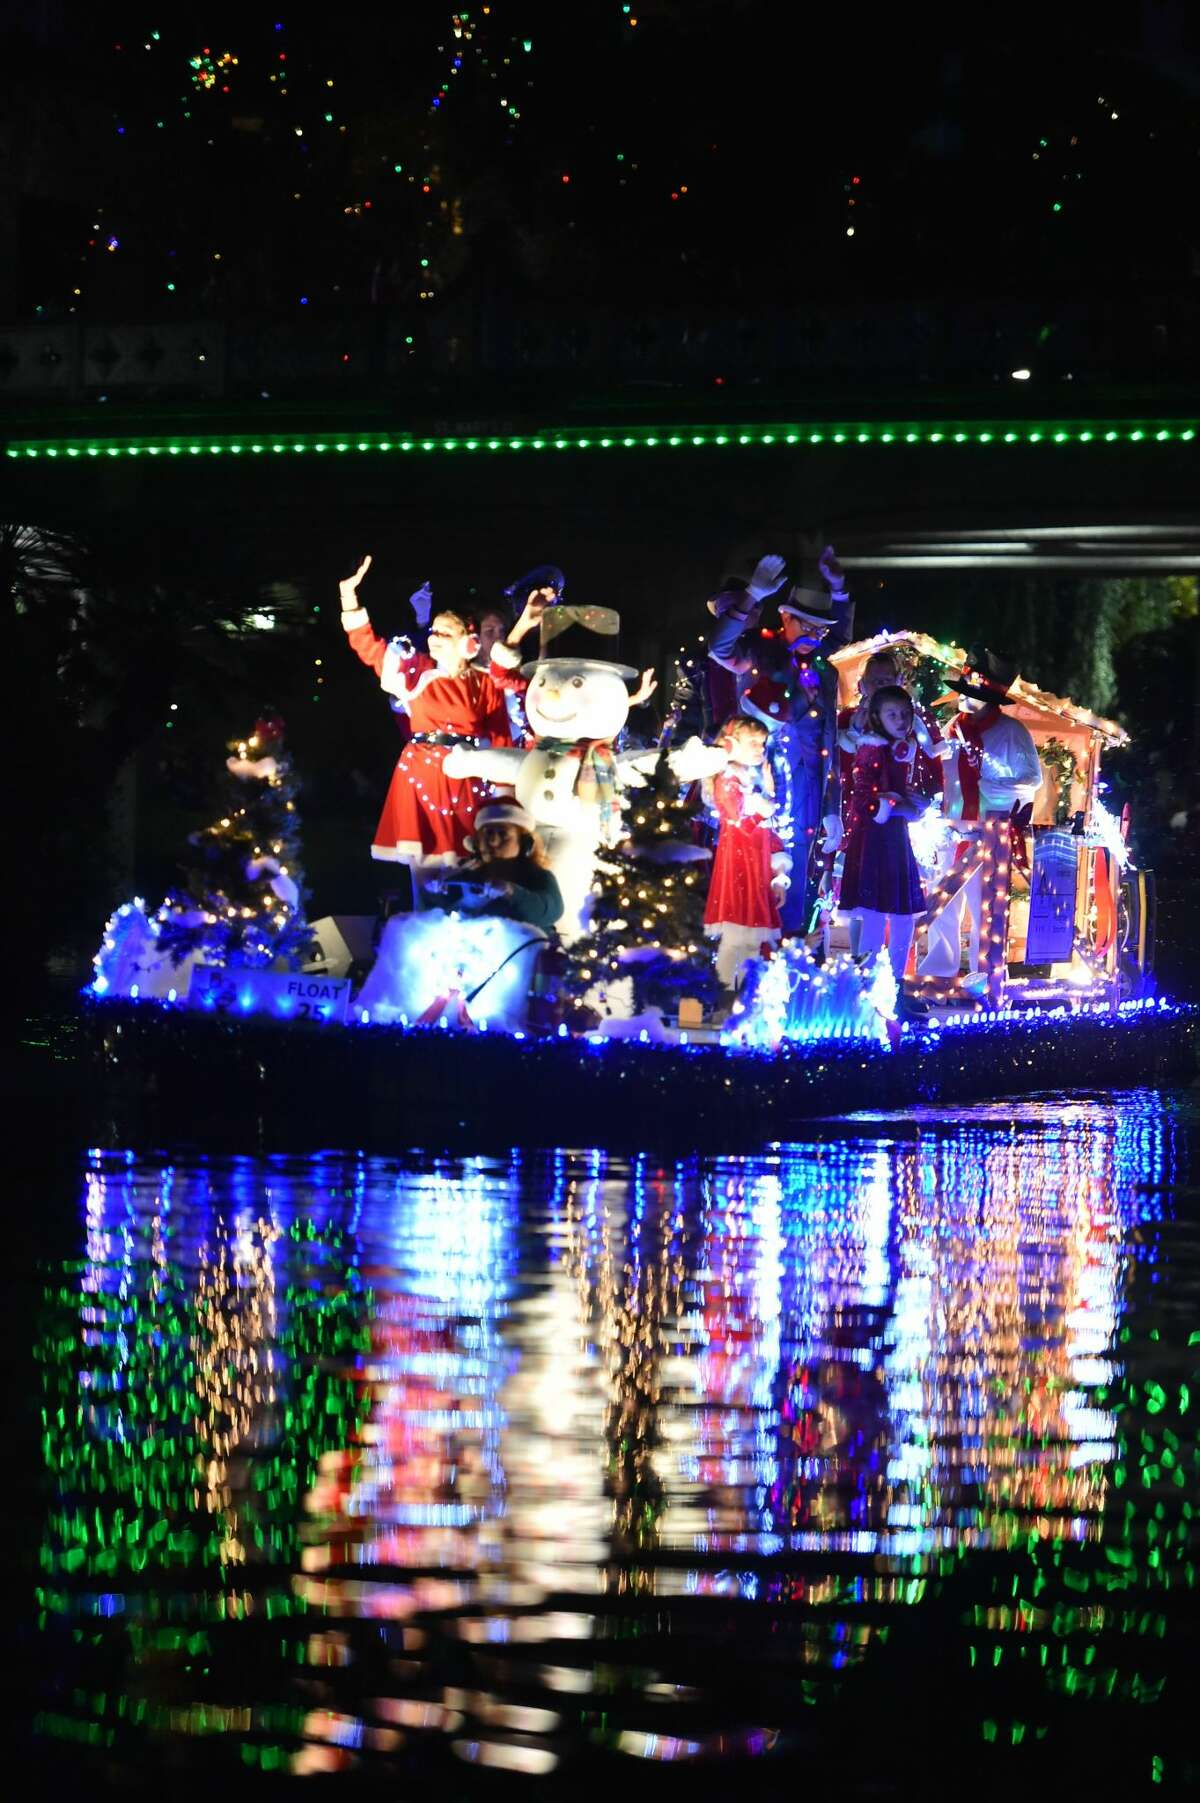 Floats cruise down the river during the 37th Annual Ford Holiday River Parade Friday evening. The parade features 28 illuminated floats decorated for the theme Christmas at the Movies?